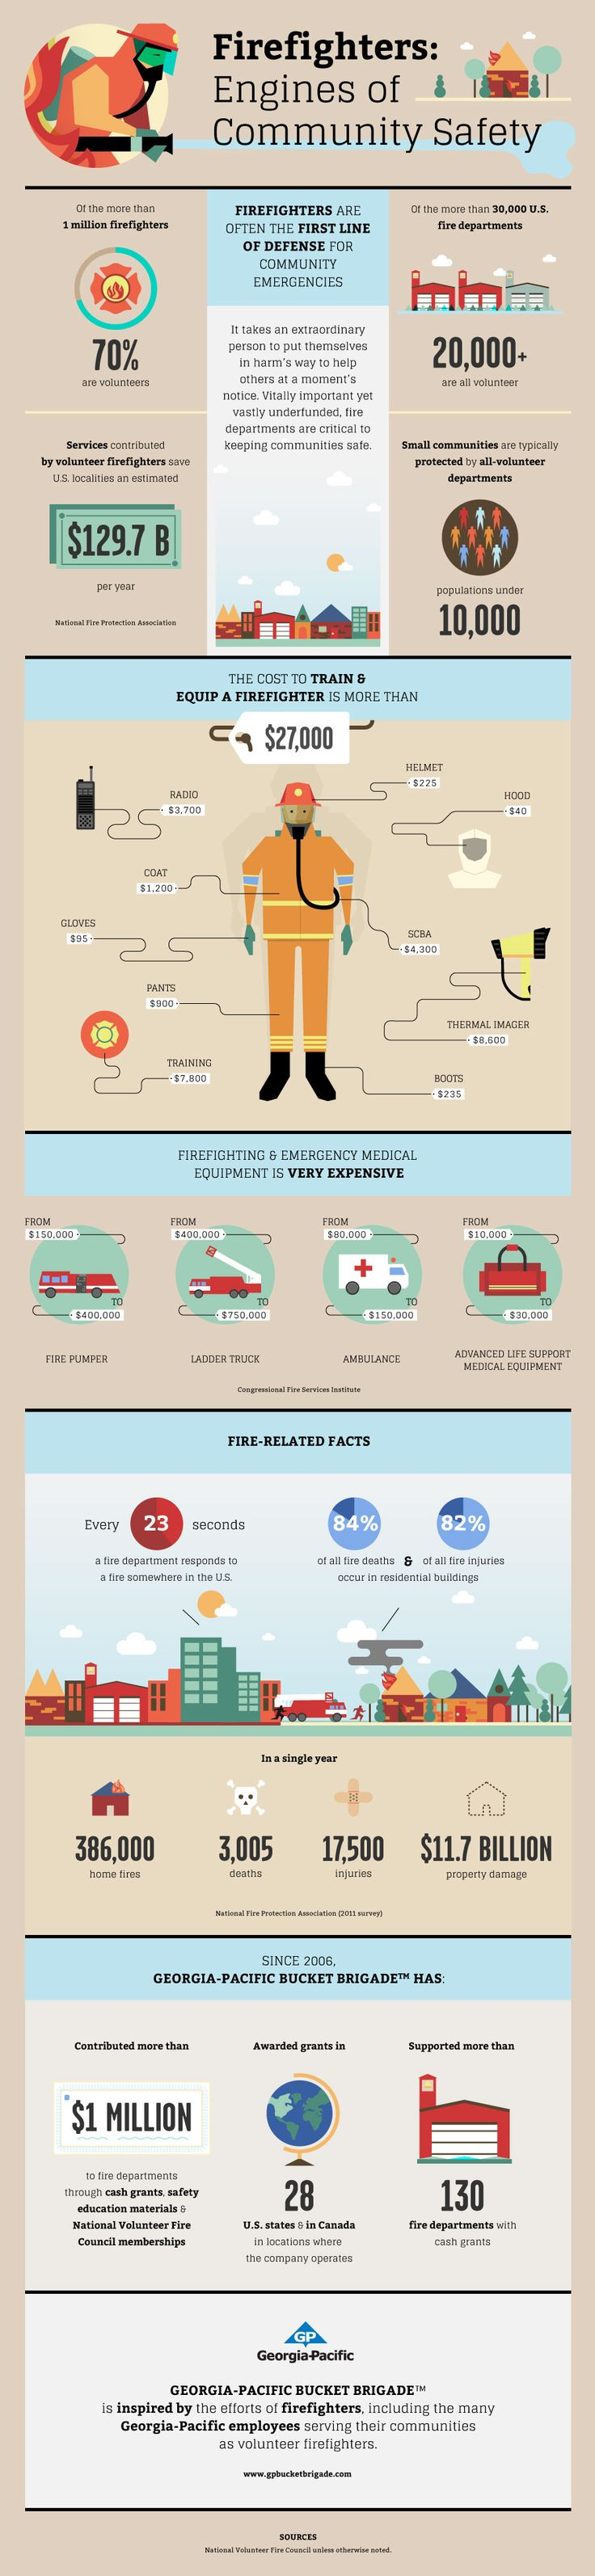 Firefighters - Engines of Community Safety @ Pinfographics